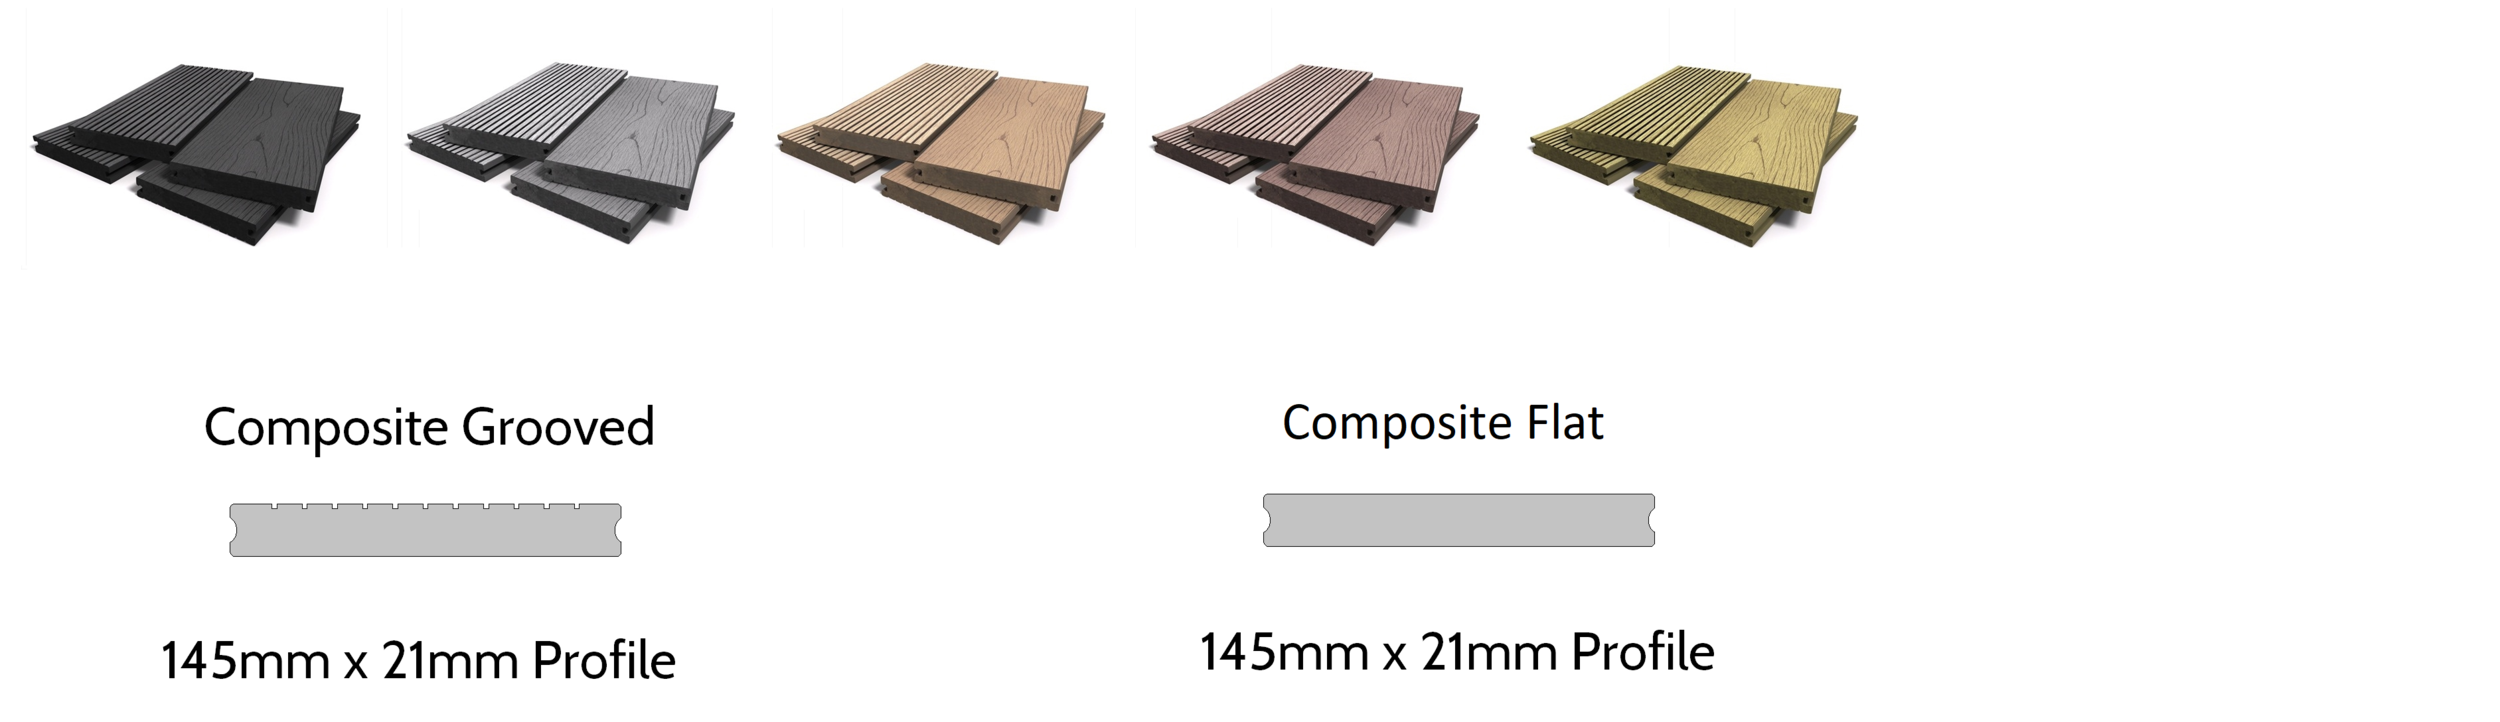 Composite Decking - Available in a none slip micro-grooved or flat finish and also in a choice of 5 colours. Matches well to most cladding types, in particular, composite cladding options. Due to the nature of this product, it has a very long life expectancy.